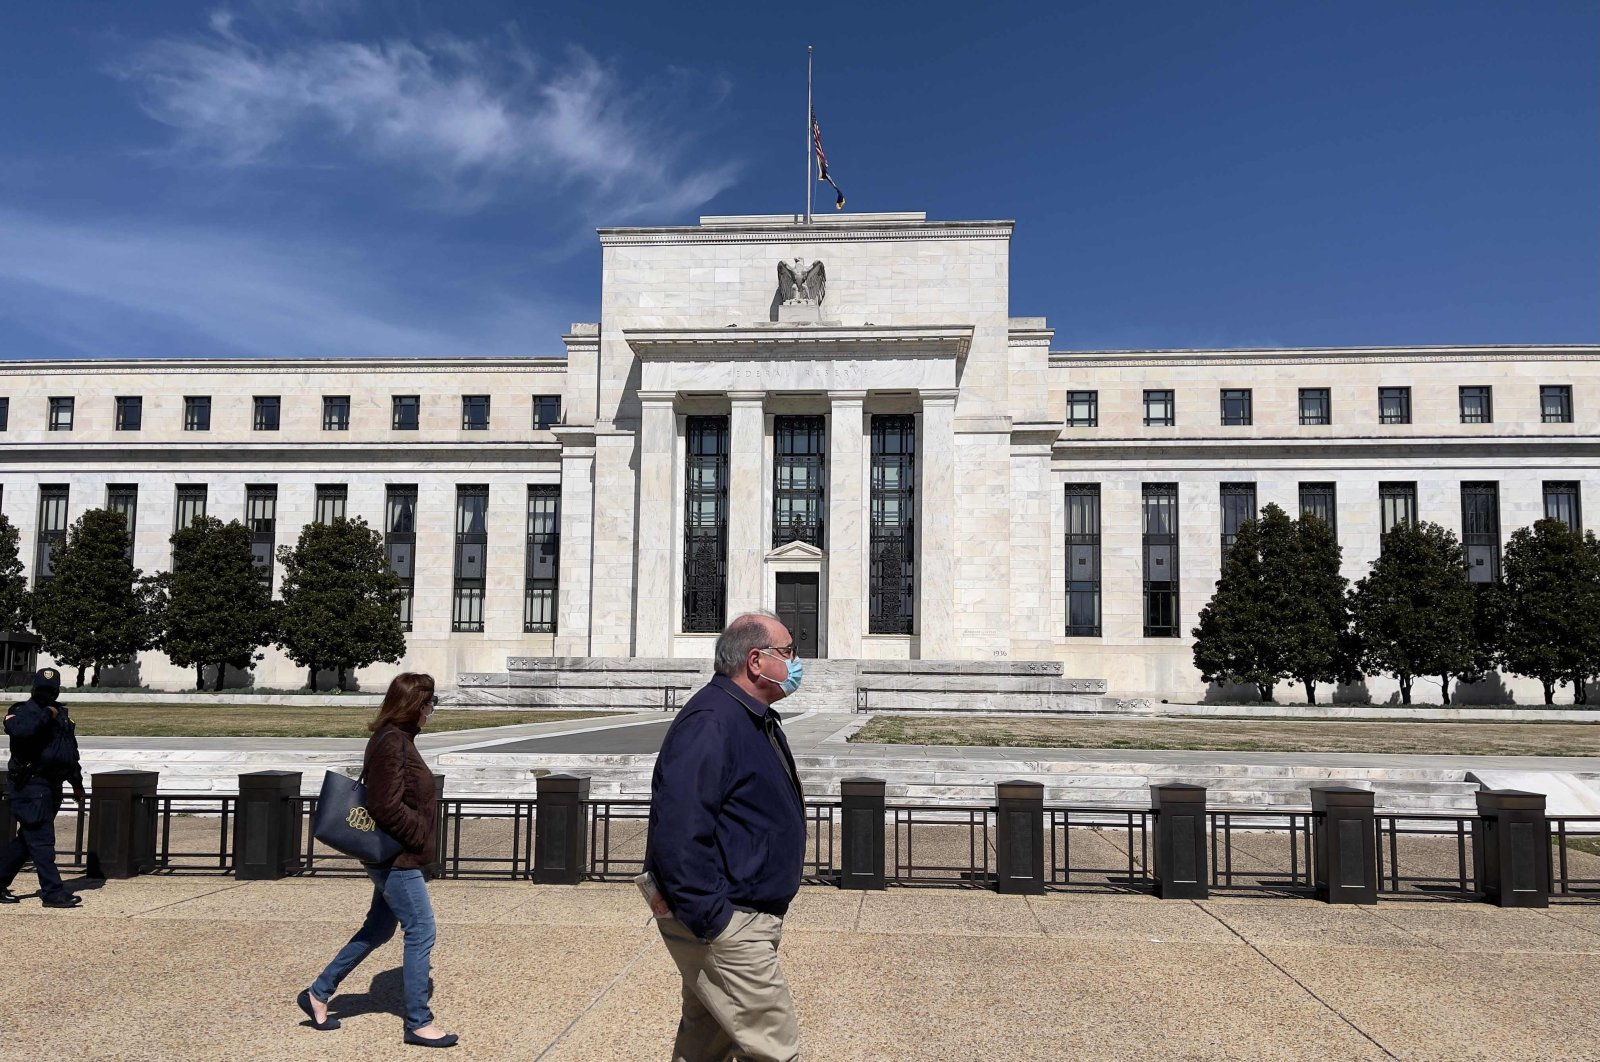 People walk past the Federal Reserve building in Washington, D.C., U.S., March 19, 2021. (AFP Photo)